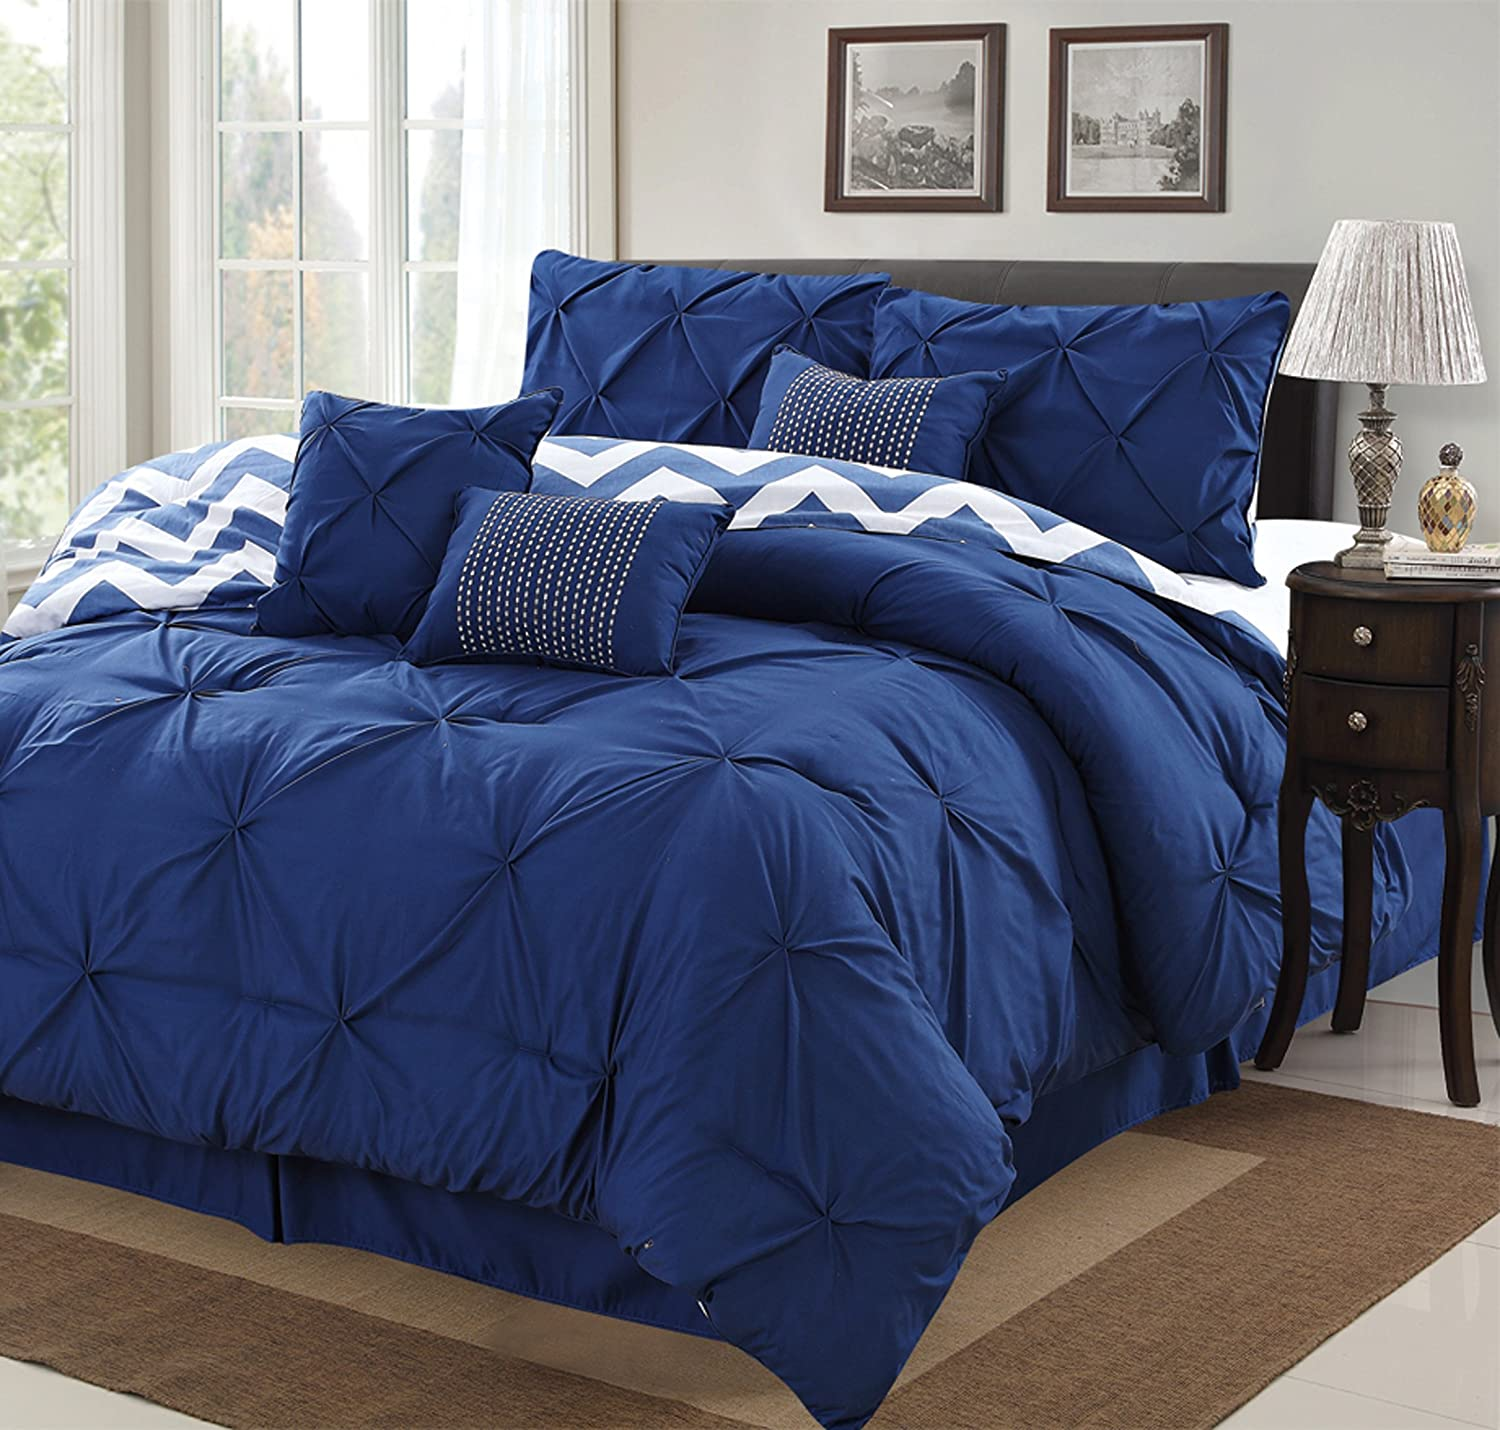 7 Piece Modern Pinch Pleated Comforter Set (King, Navy Blue